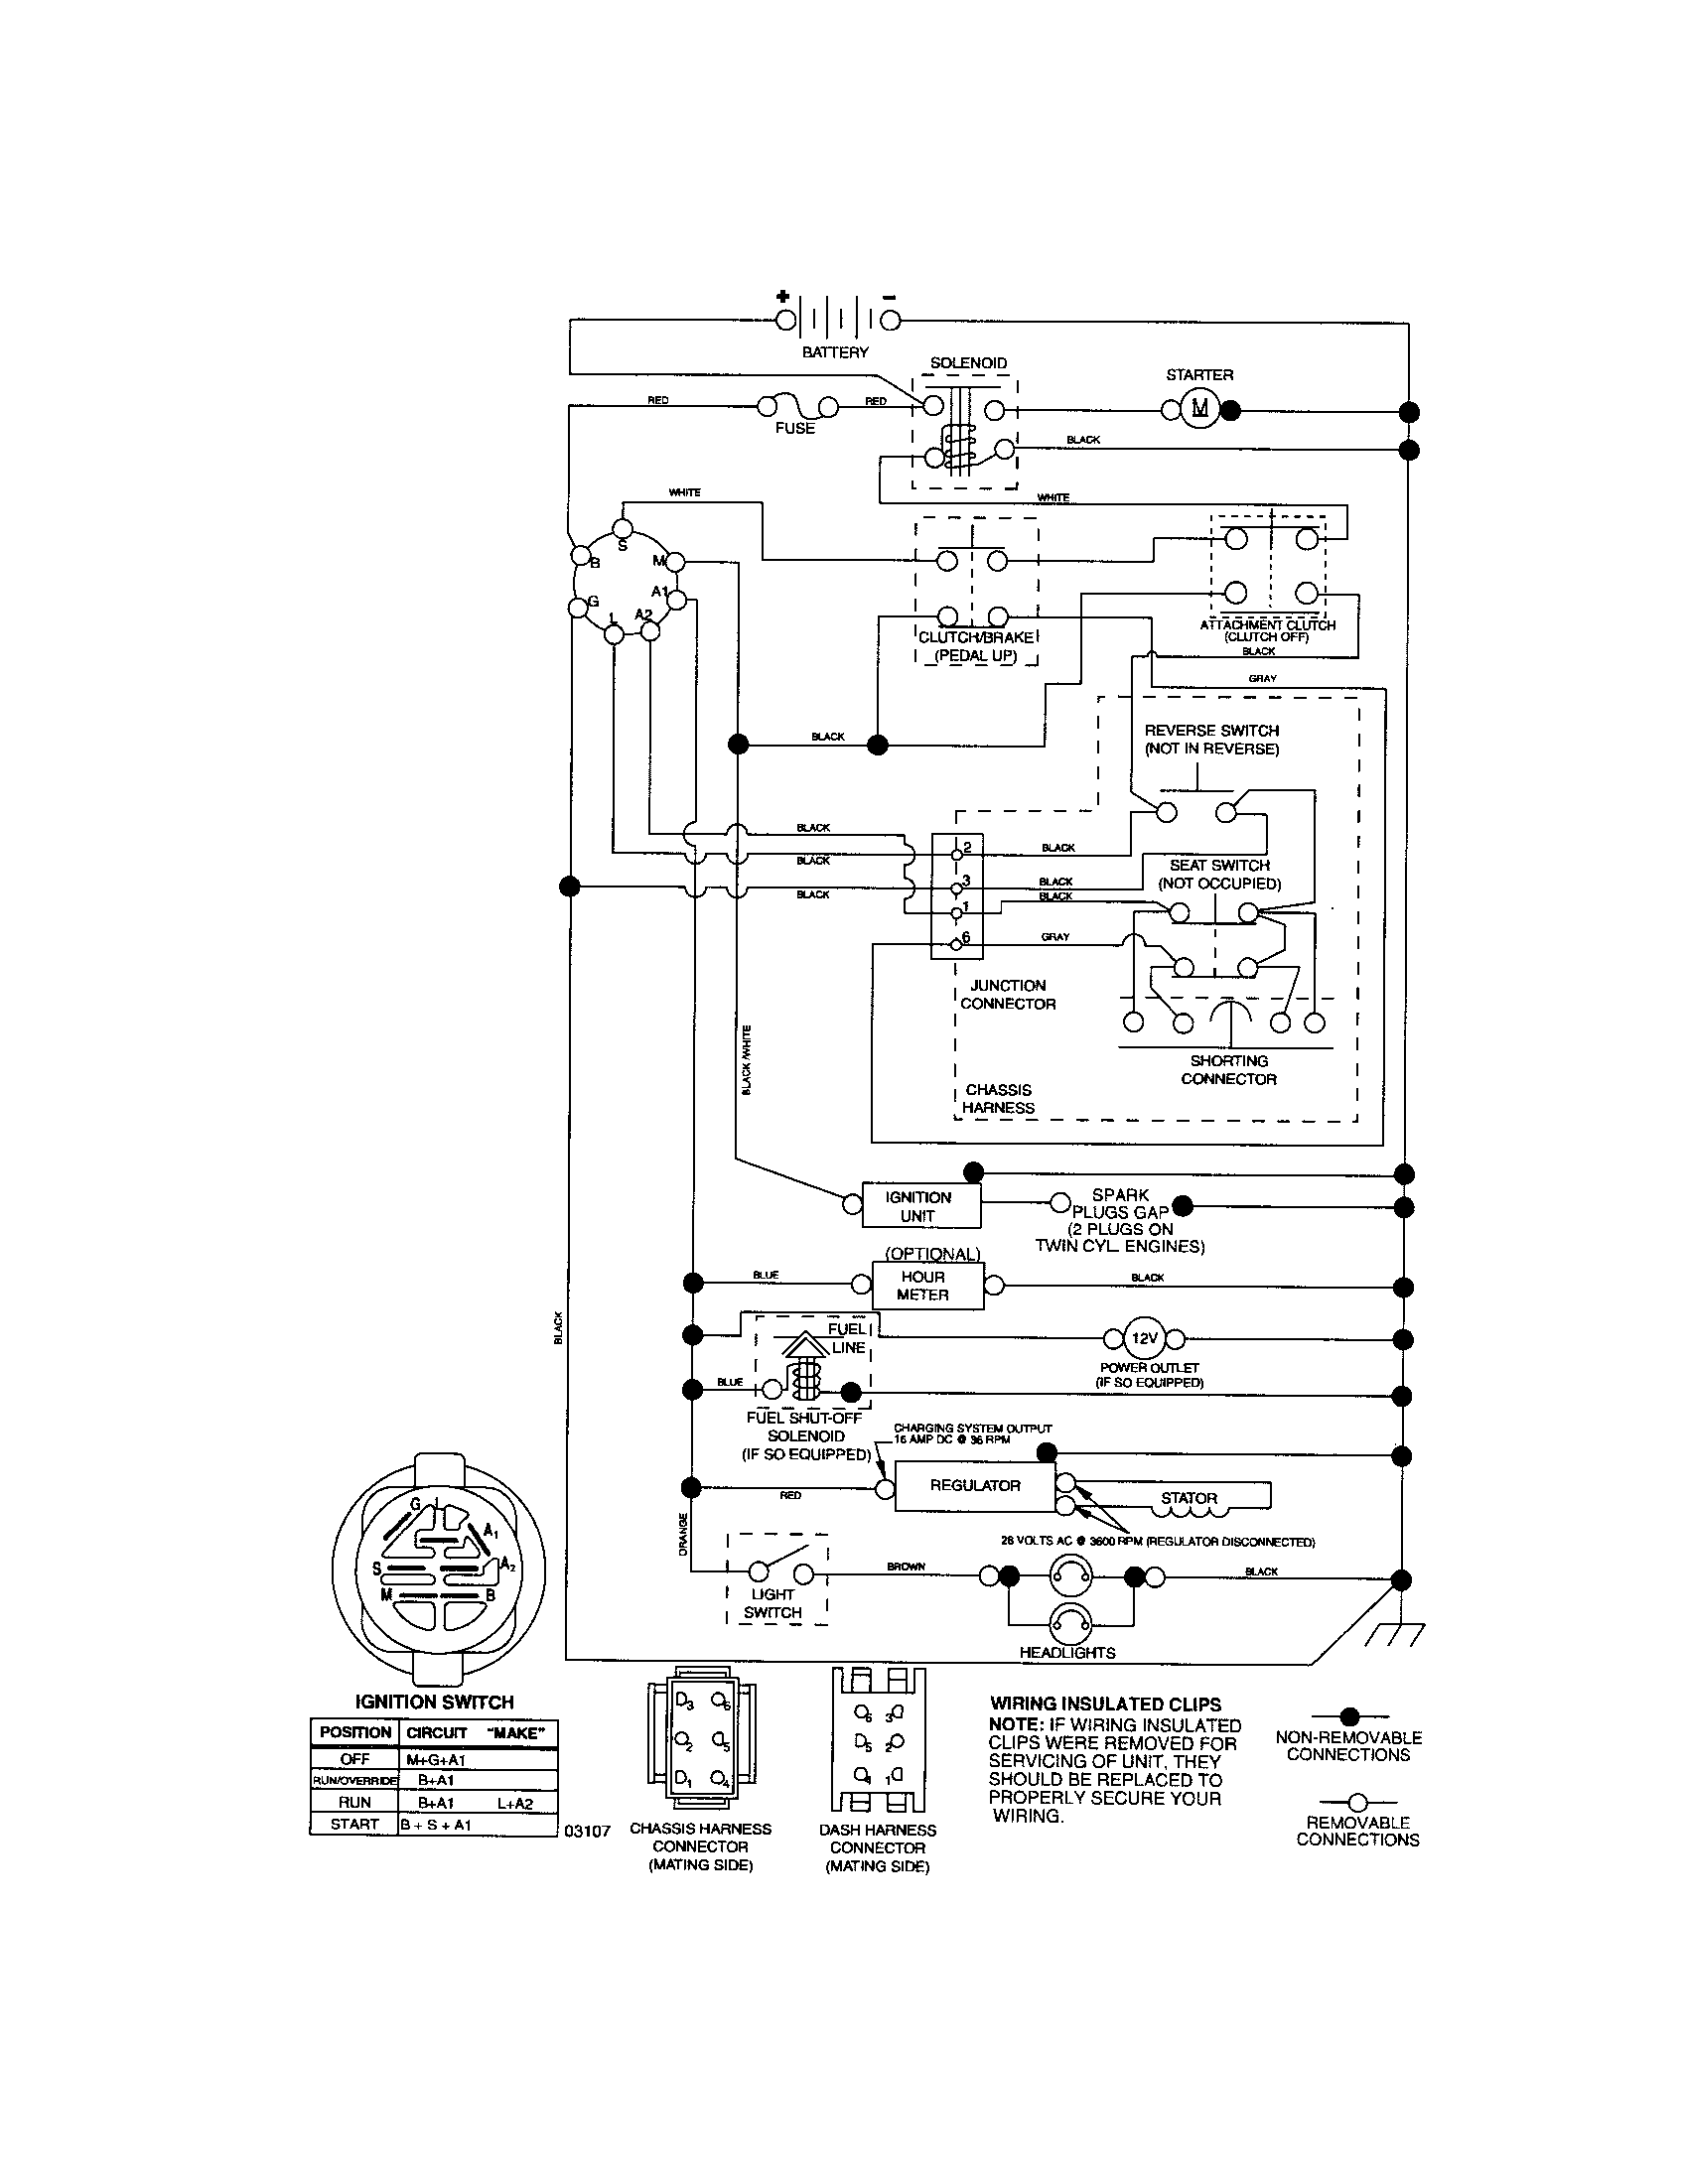 hight resolution of building electrical wiring schematic simple